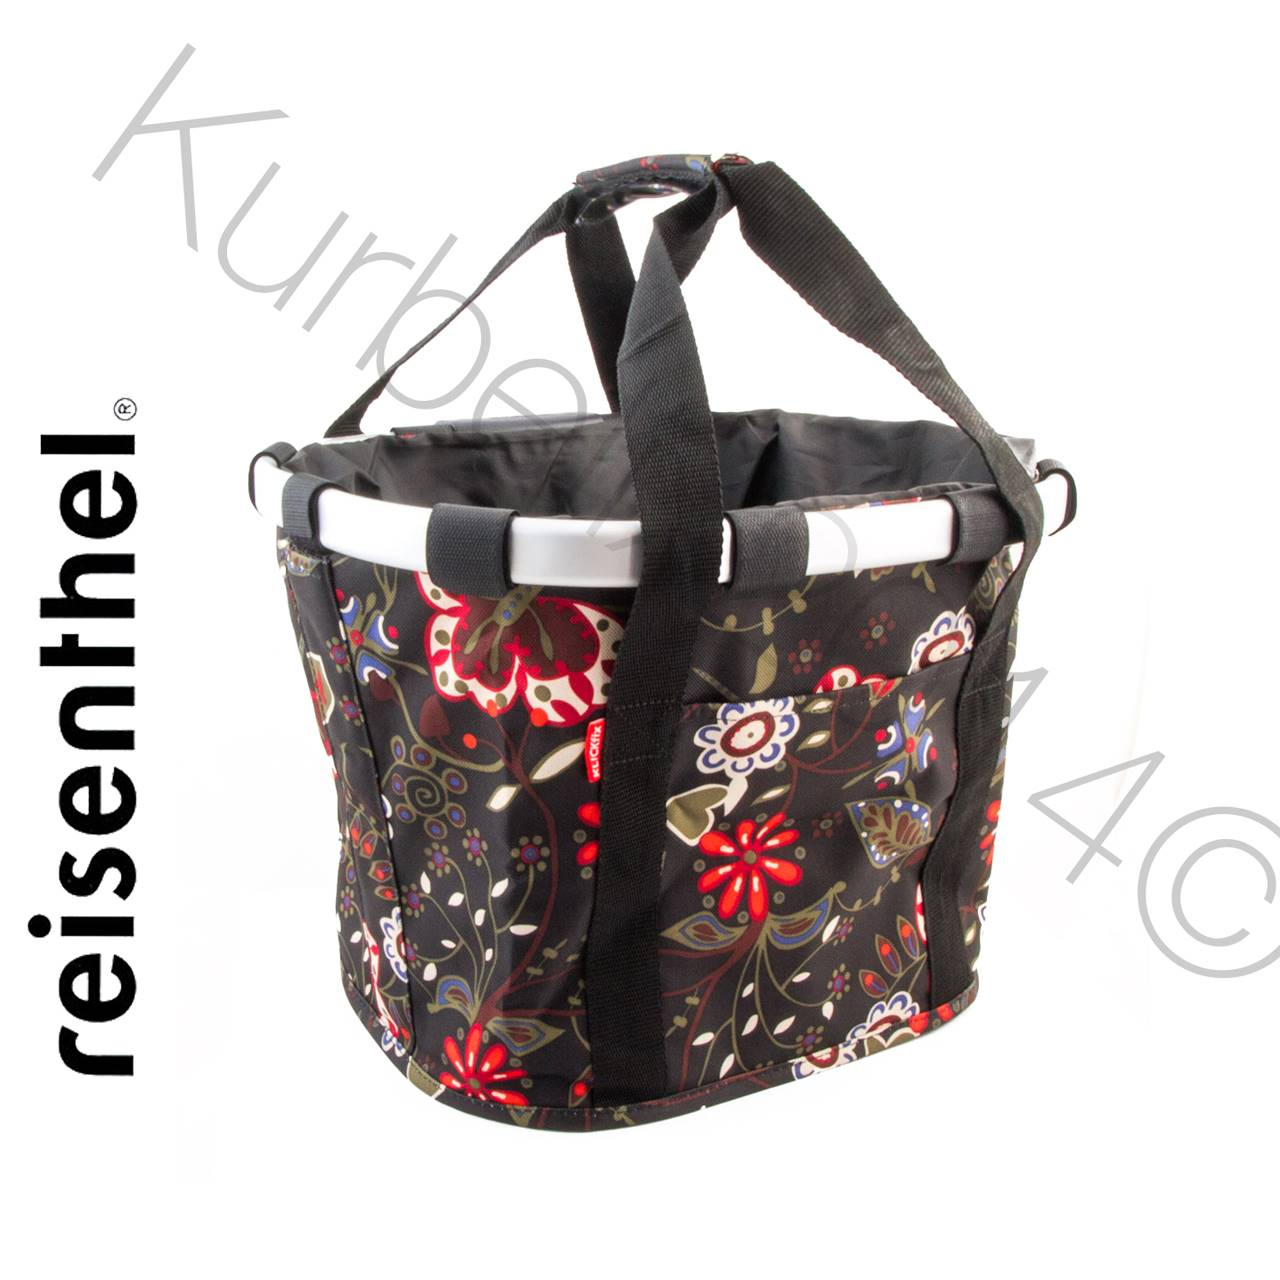 klickfix lenkertasche fahrradkorb reisenthel bikebasket g nstig kaufen. Black Bedroom Furniture Sets. Home Design Ideas